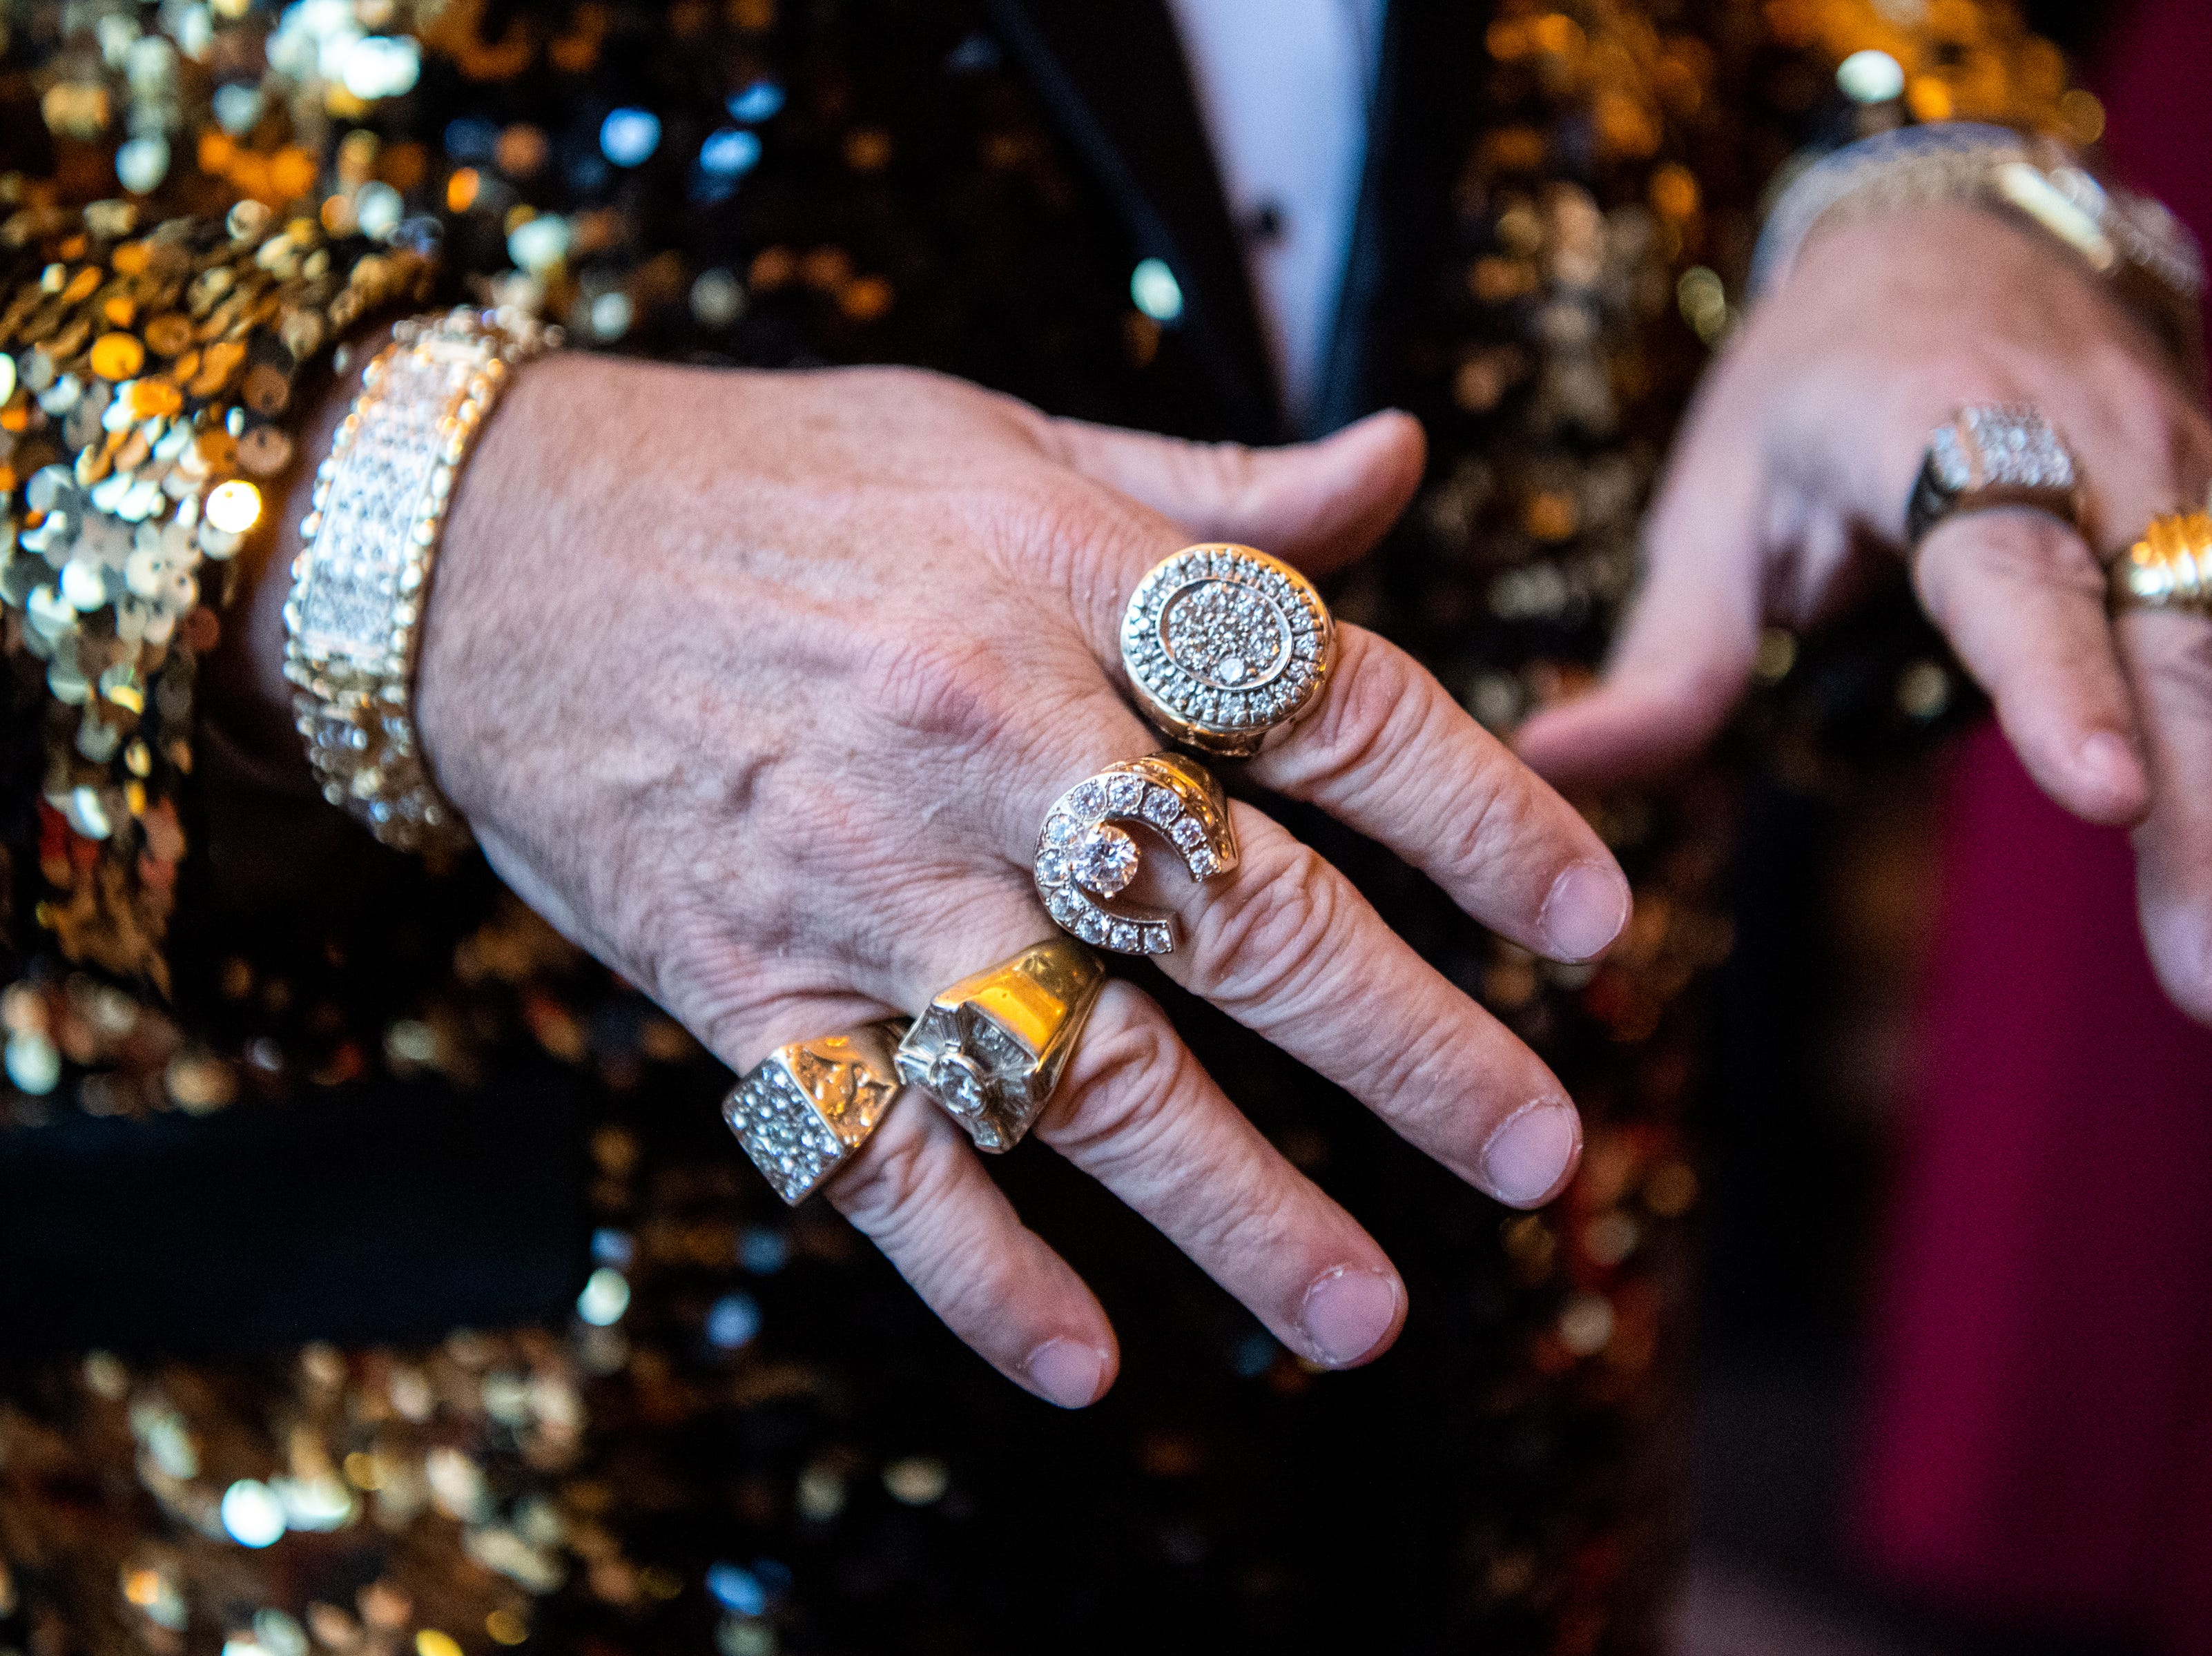 Kevin Kennedy shows off his rings during Austin Peay State University's annual Candlelight Ball at the Omni Nashville Hotel Saturday, March 16, 2019, in Nashville, Tenn.